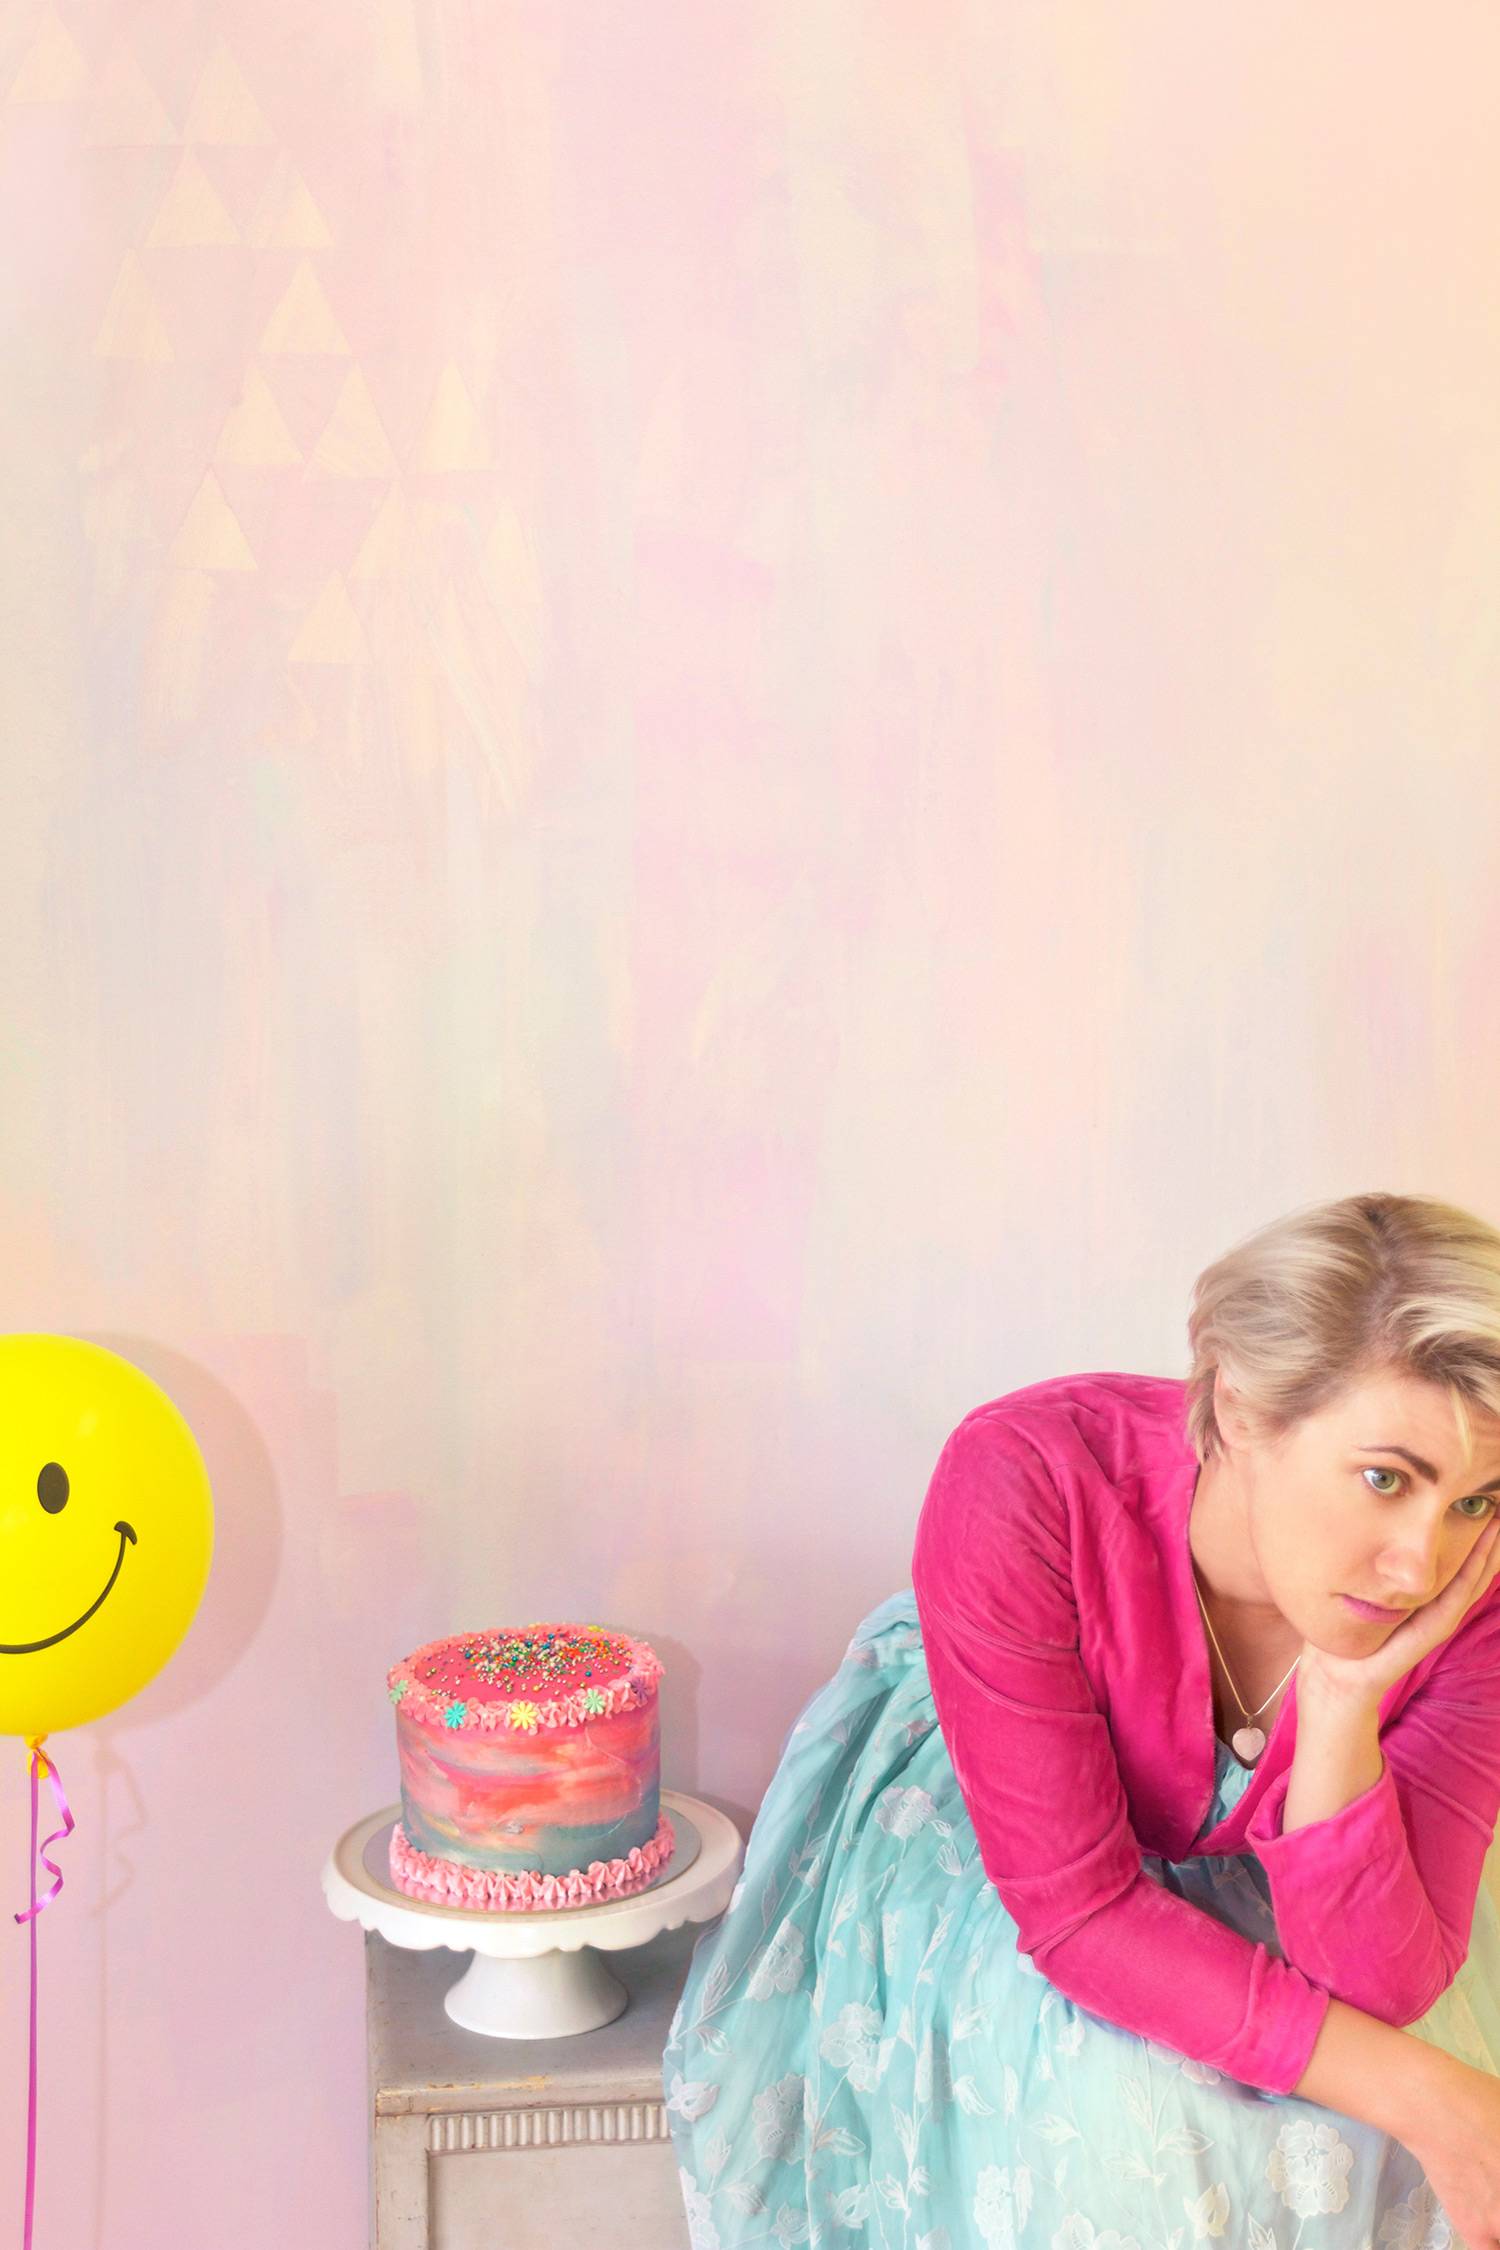 Alice in Wonderland party theme styled interior featuring pastel abstract mural and portrait of Alice wearing blue princess dress and pink cropped jacket, featuring rainbow layer cake with sprinkles and smiley face yellow helium balloon.